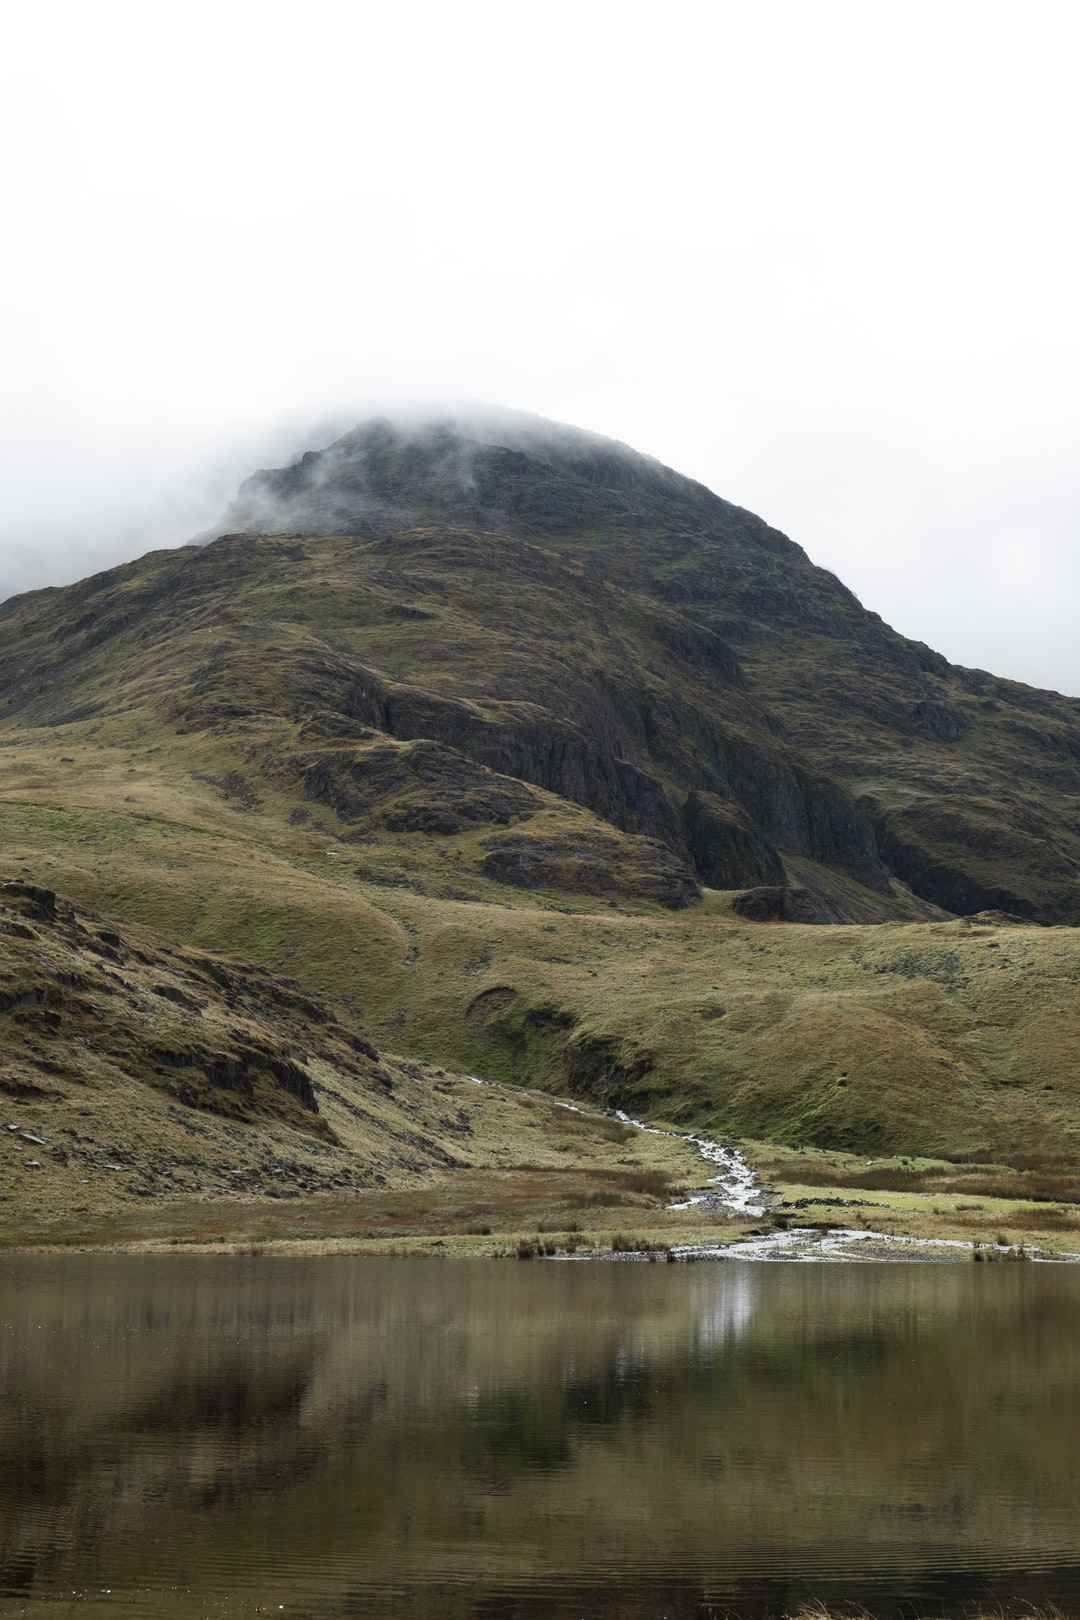 Out for a hike around Seathwaite towards Sprinkling tarn - started in mist and light rain.  When we got to Sprinkling tarn the mist lifted and rain sort of stopped allowing us a view of the hills we had not seen all day.  Always worth the effort.  No soul around, at peace and calm.